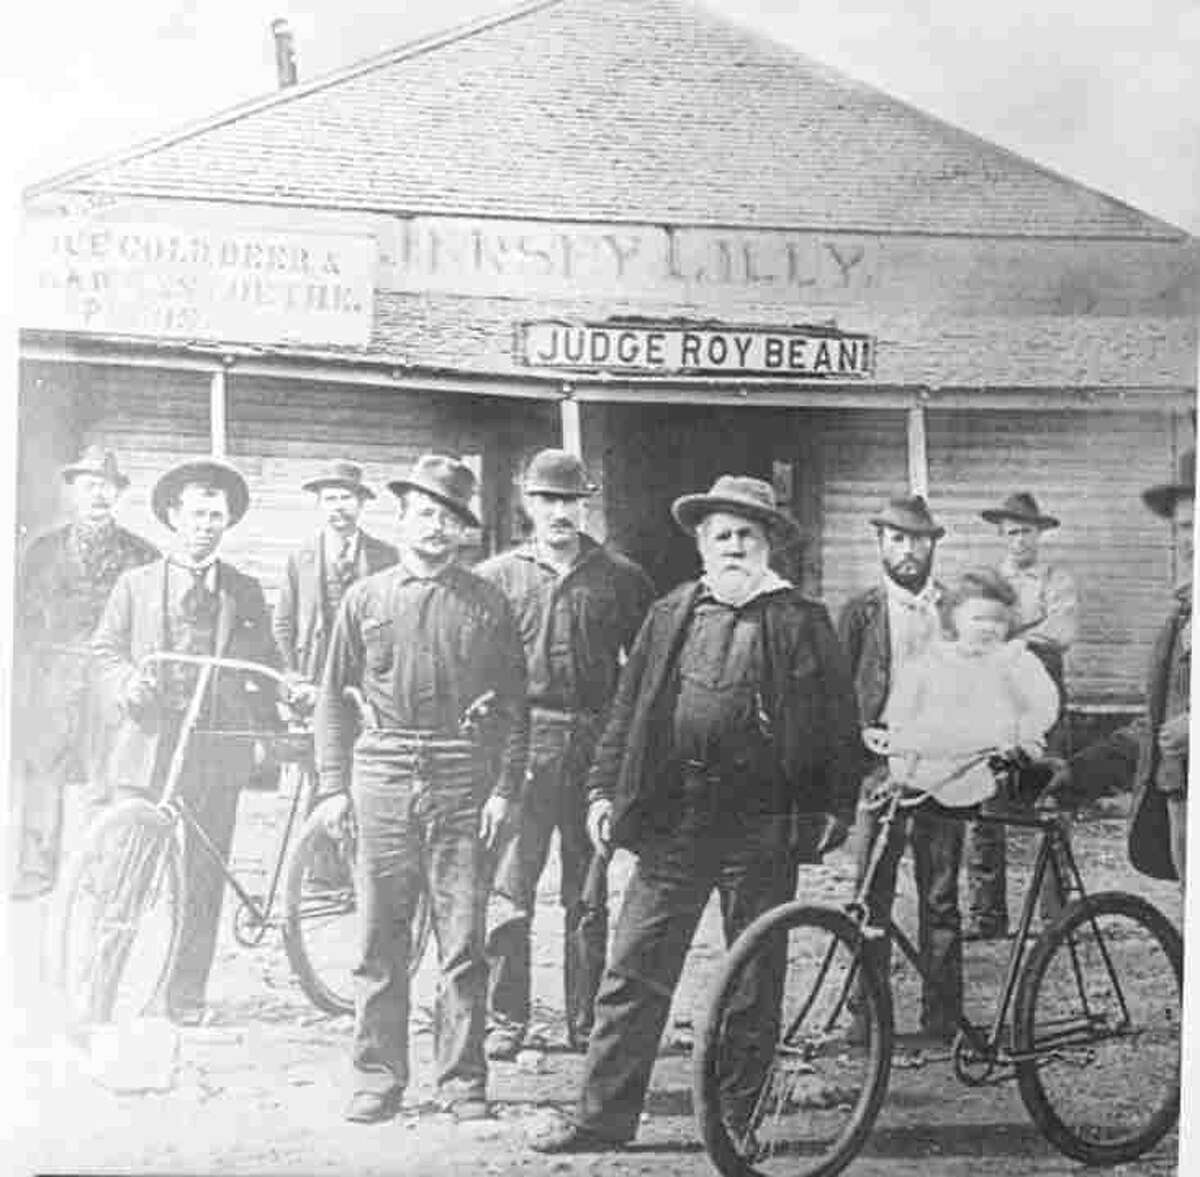 Judge Roy Bean and men posed in front of the Jersey Lilly. Photographed in Langtry, Tex